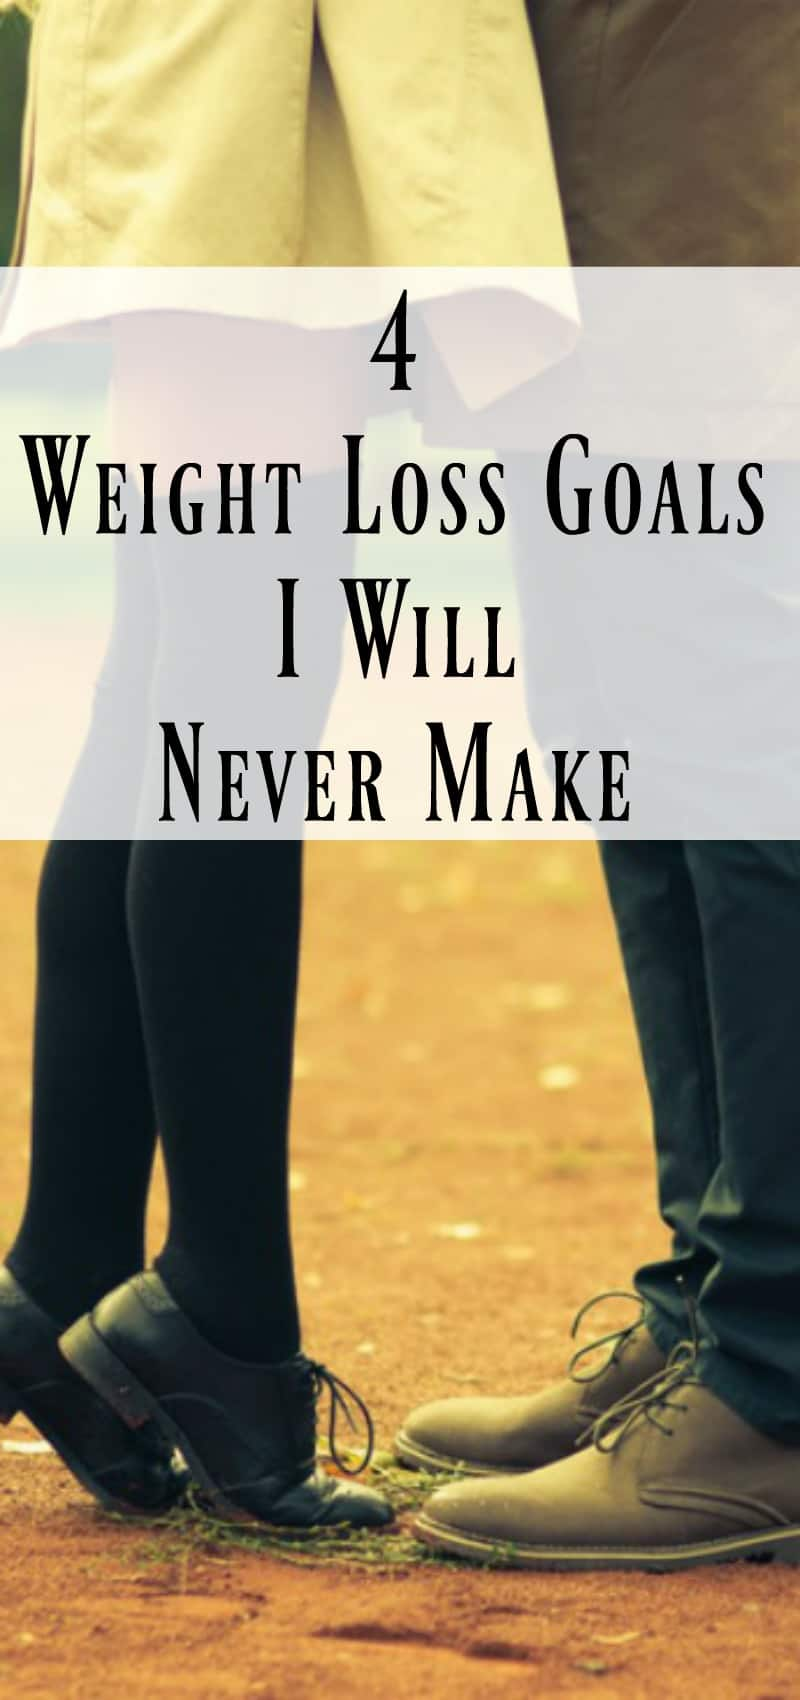 4 weight loss goals I will never make